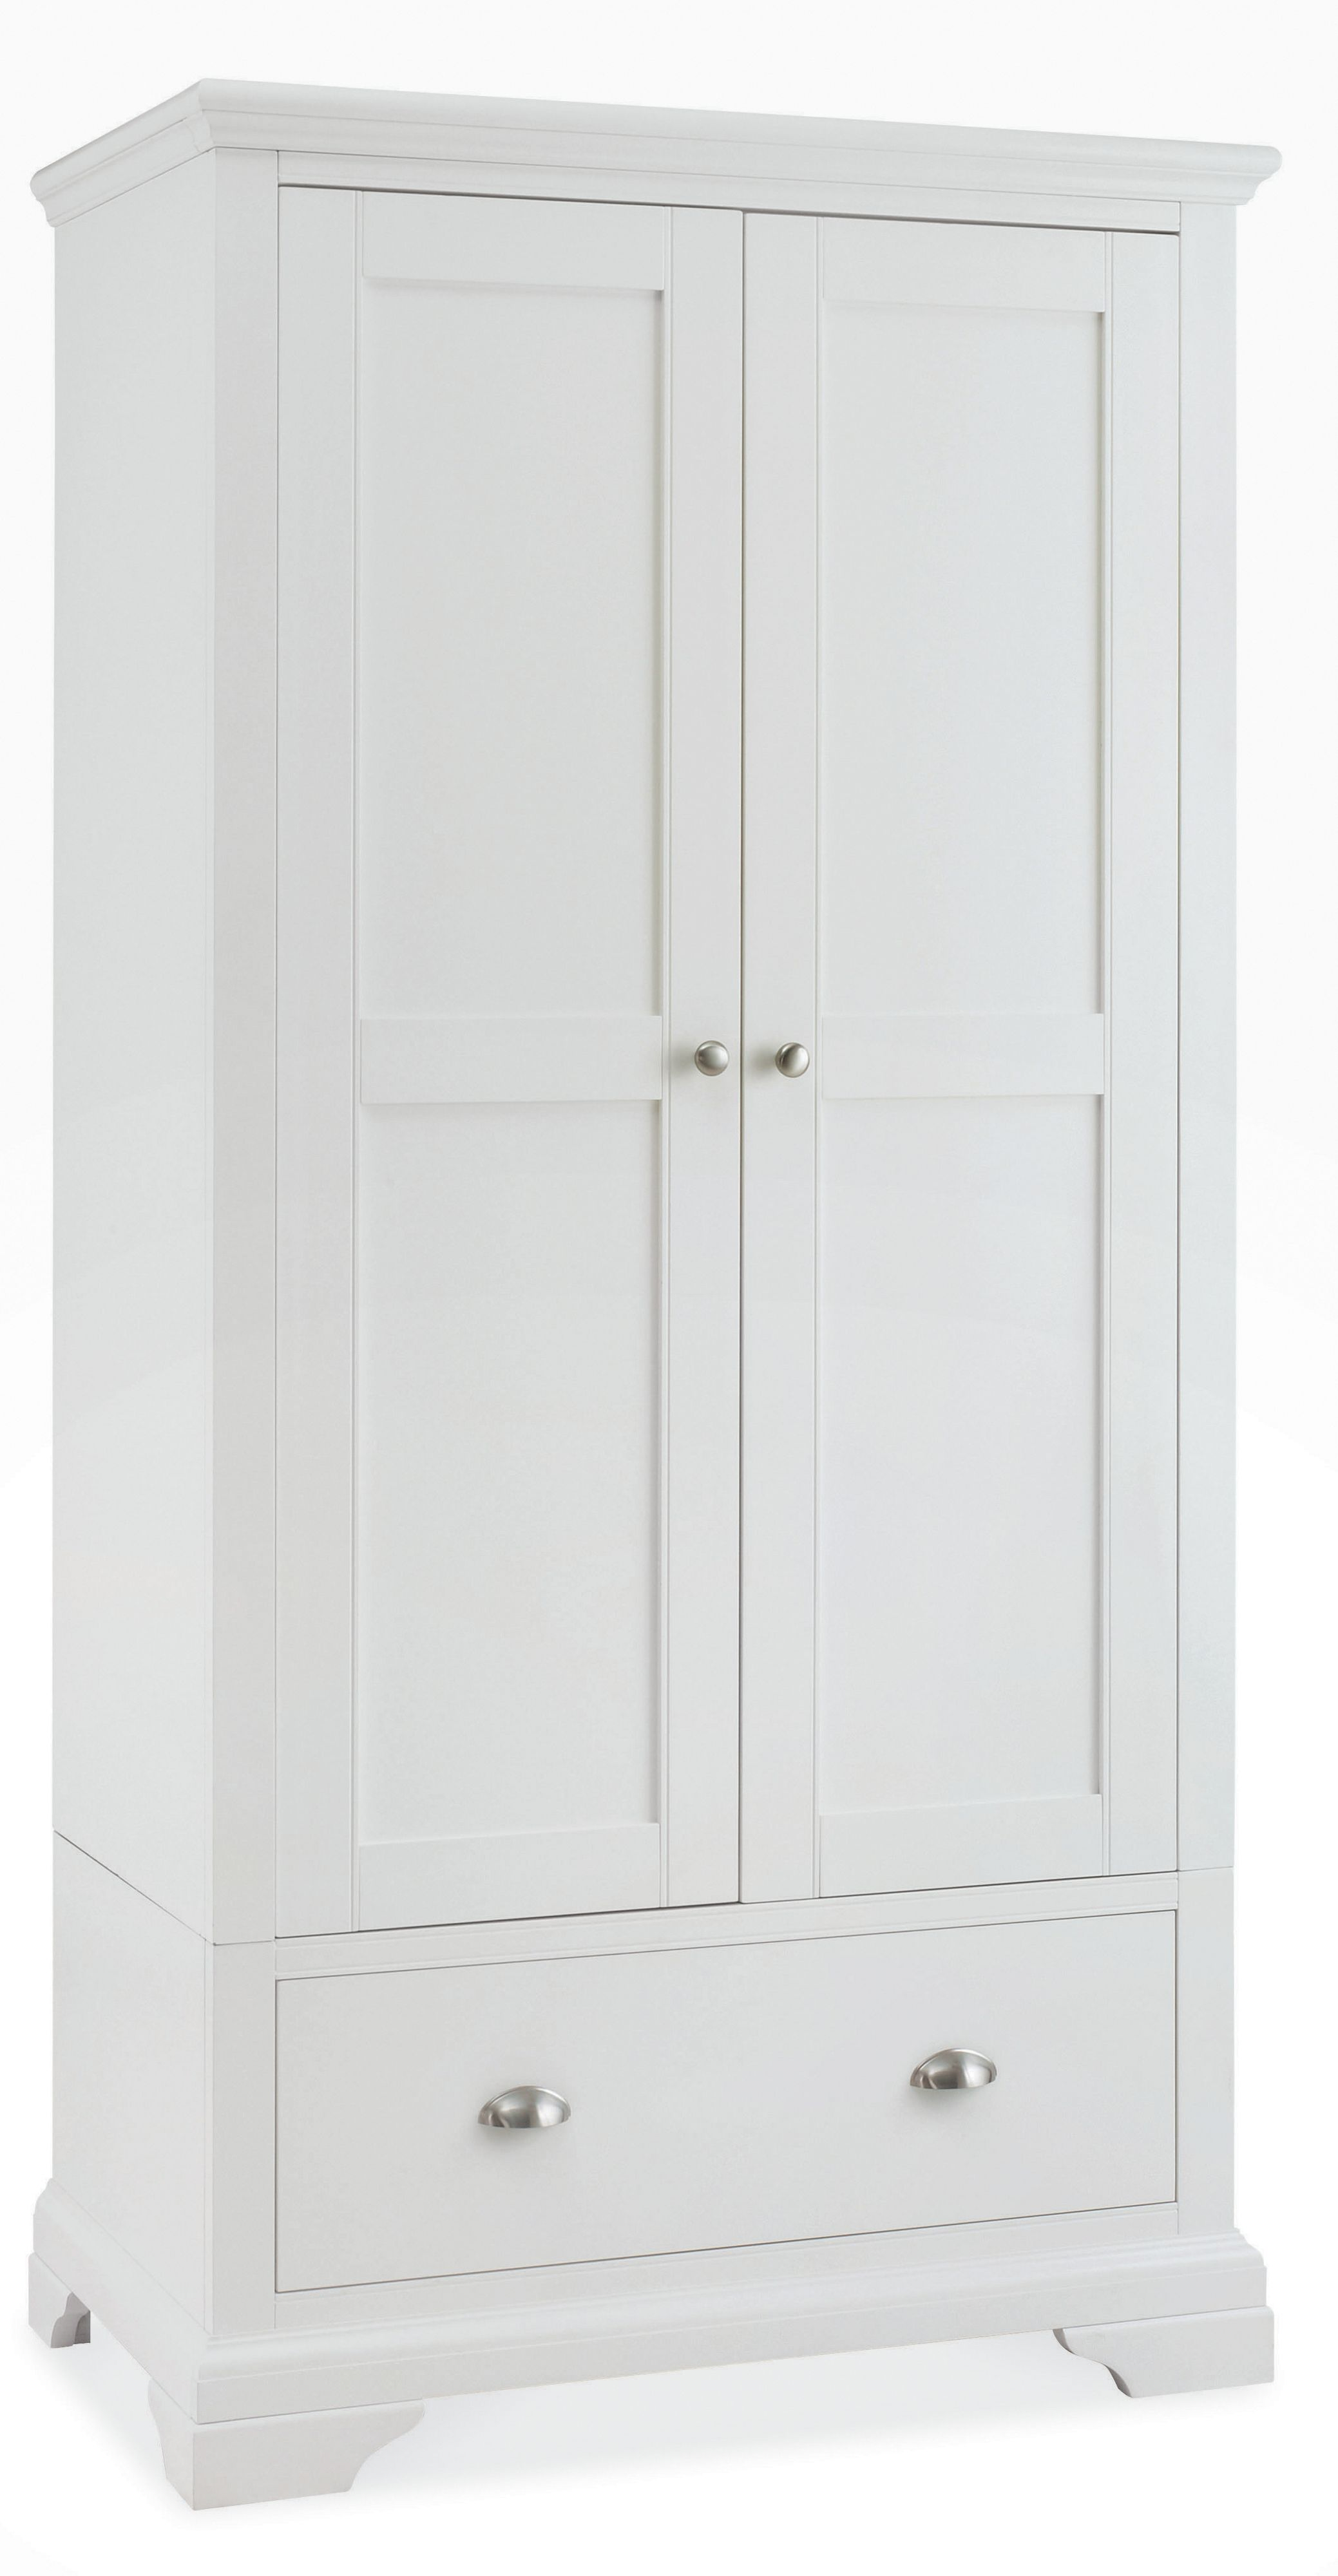 Etienne White 2 door 1 drawer wardrobe